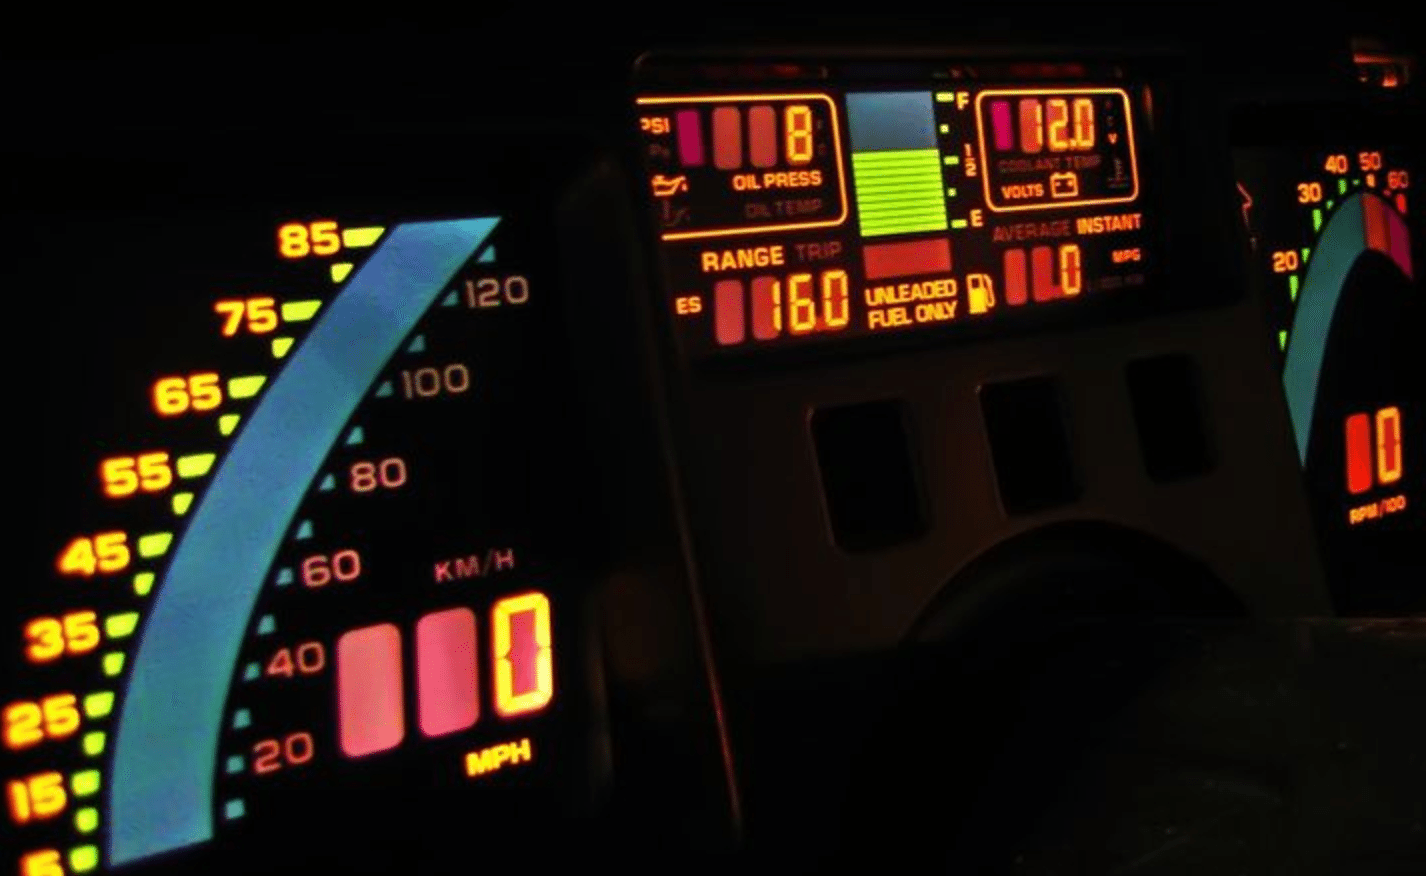 1985 Corvette Digital Dashboard.